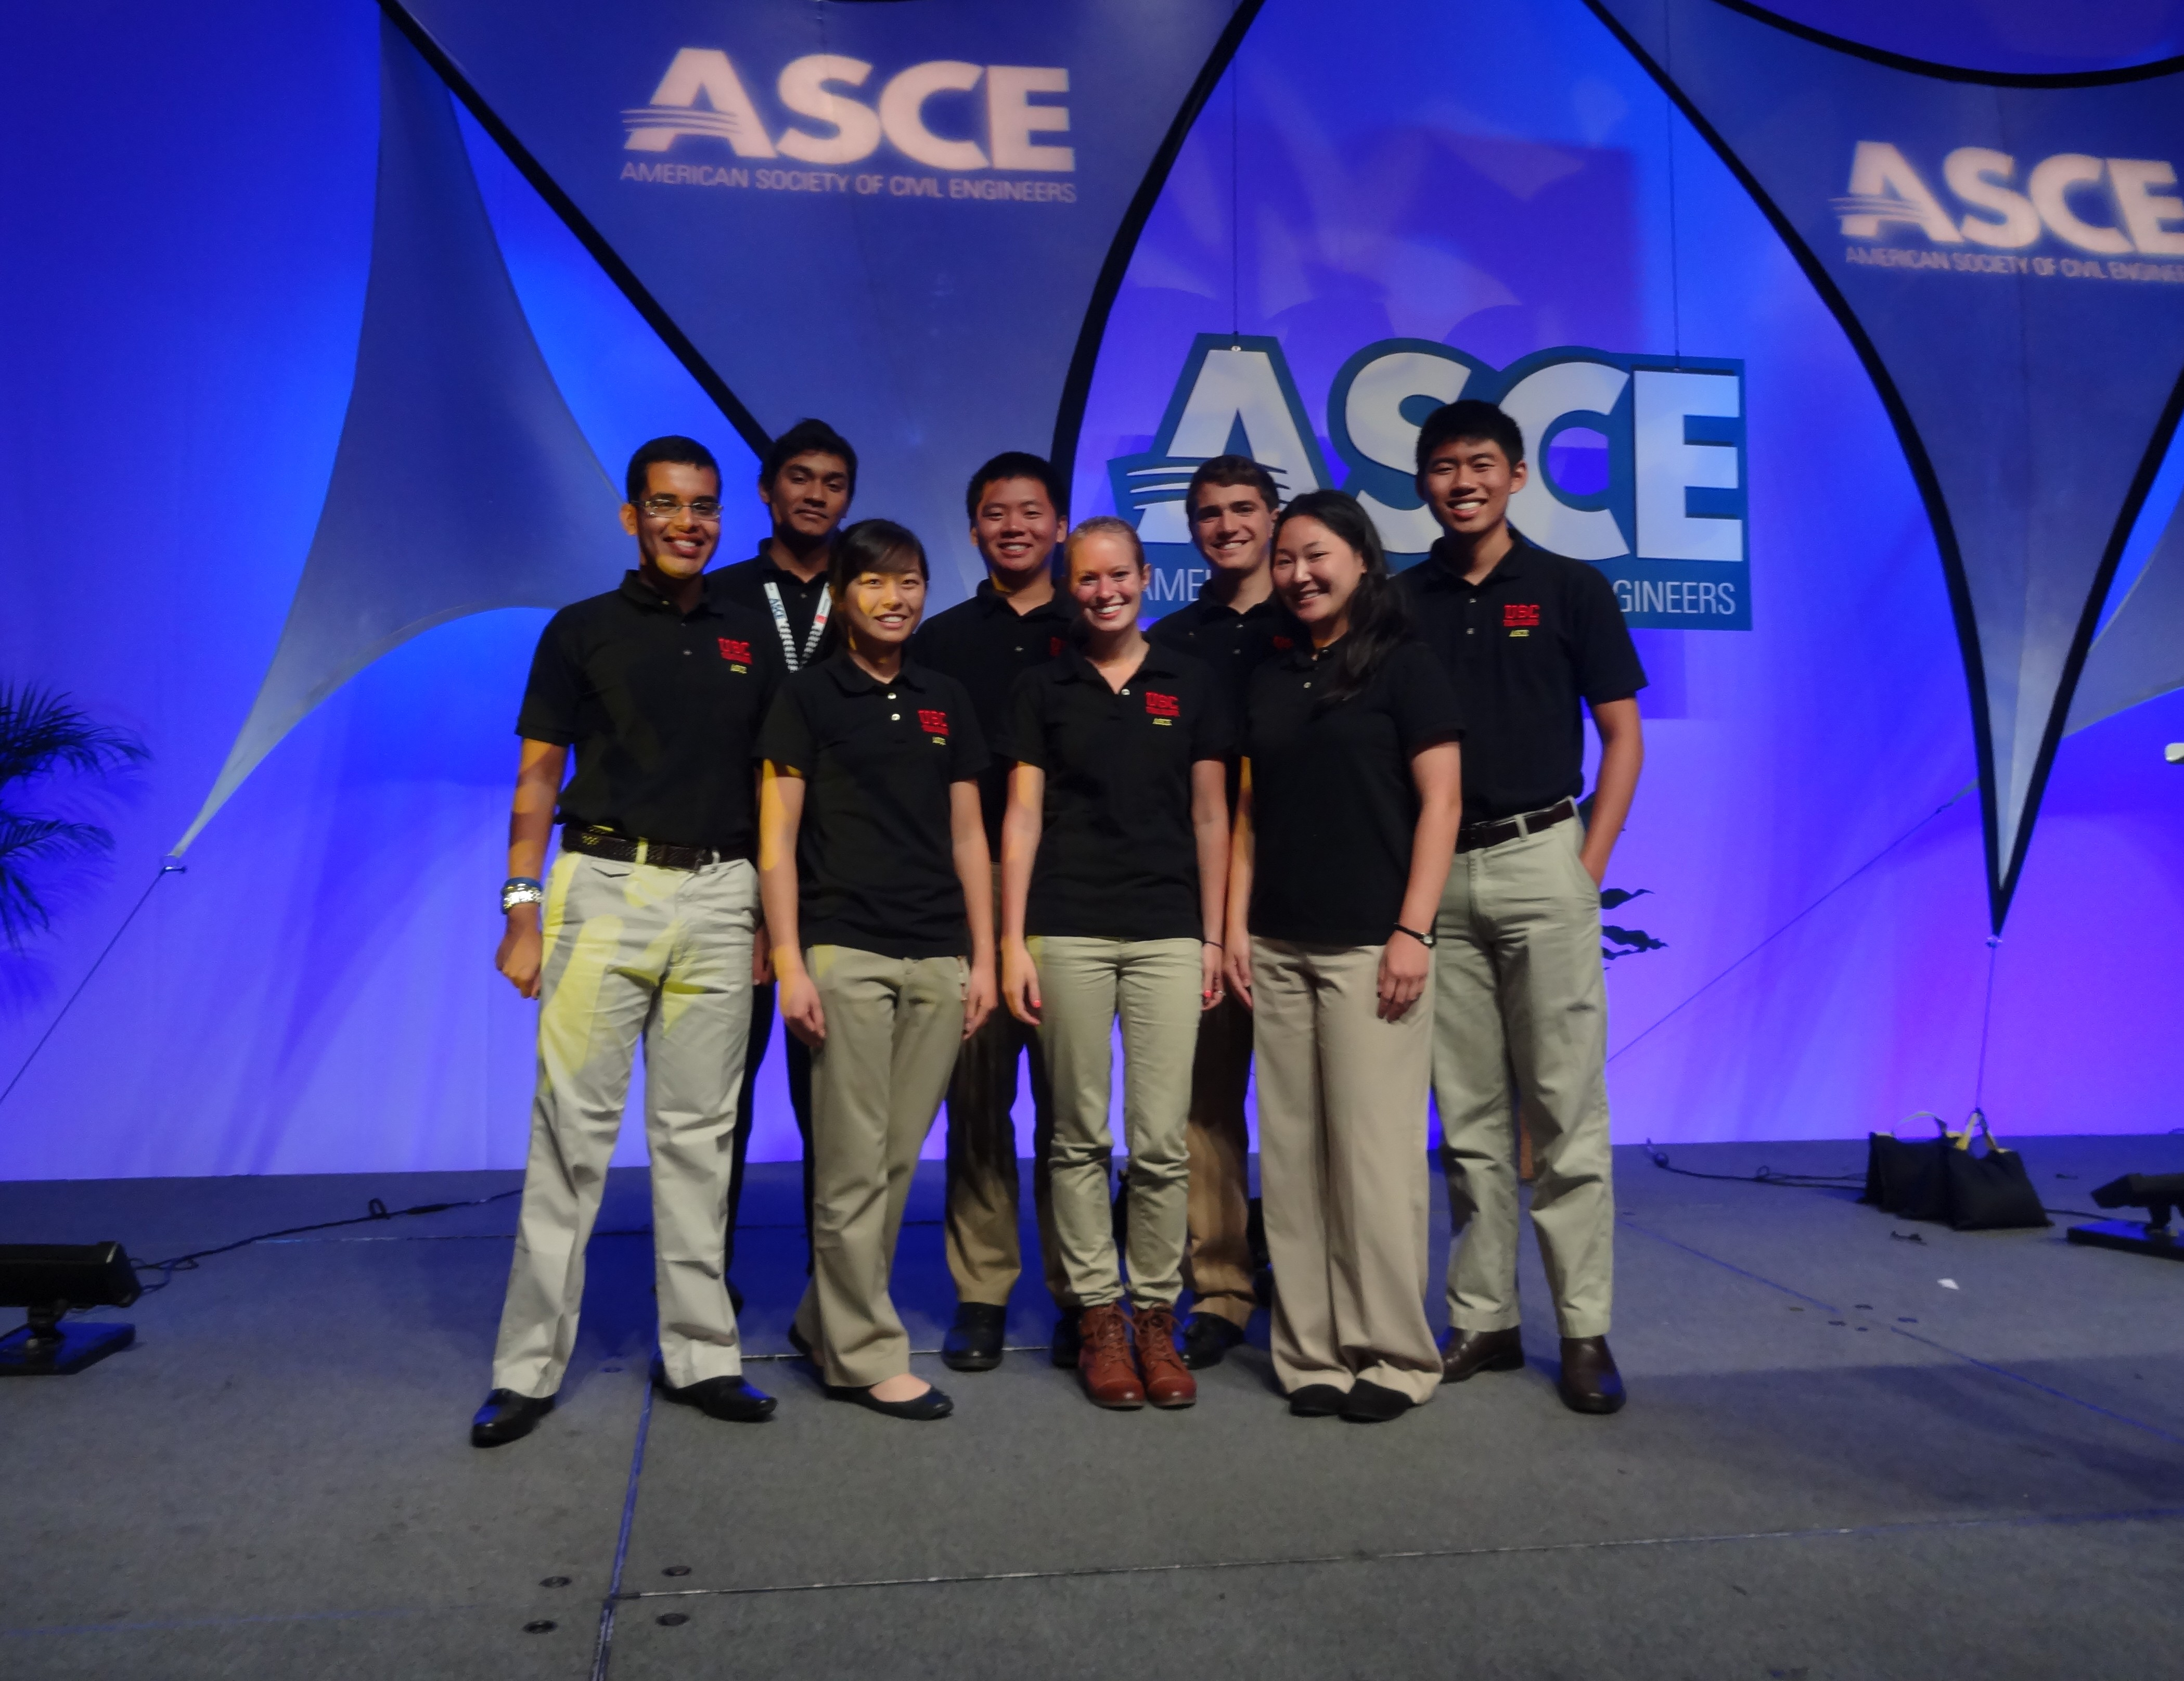 2013 ASCE National Conference Photos